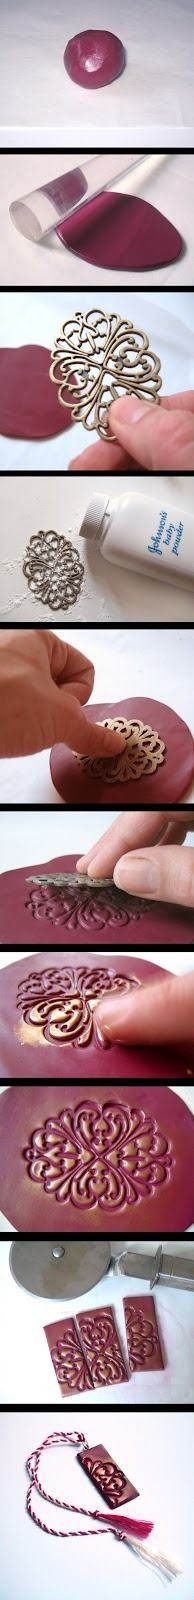 DIY polymer clay pendant: Tutorial from Baghy.